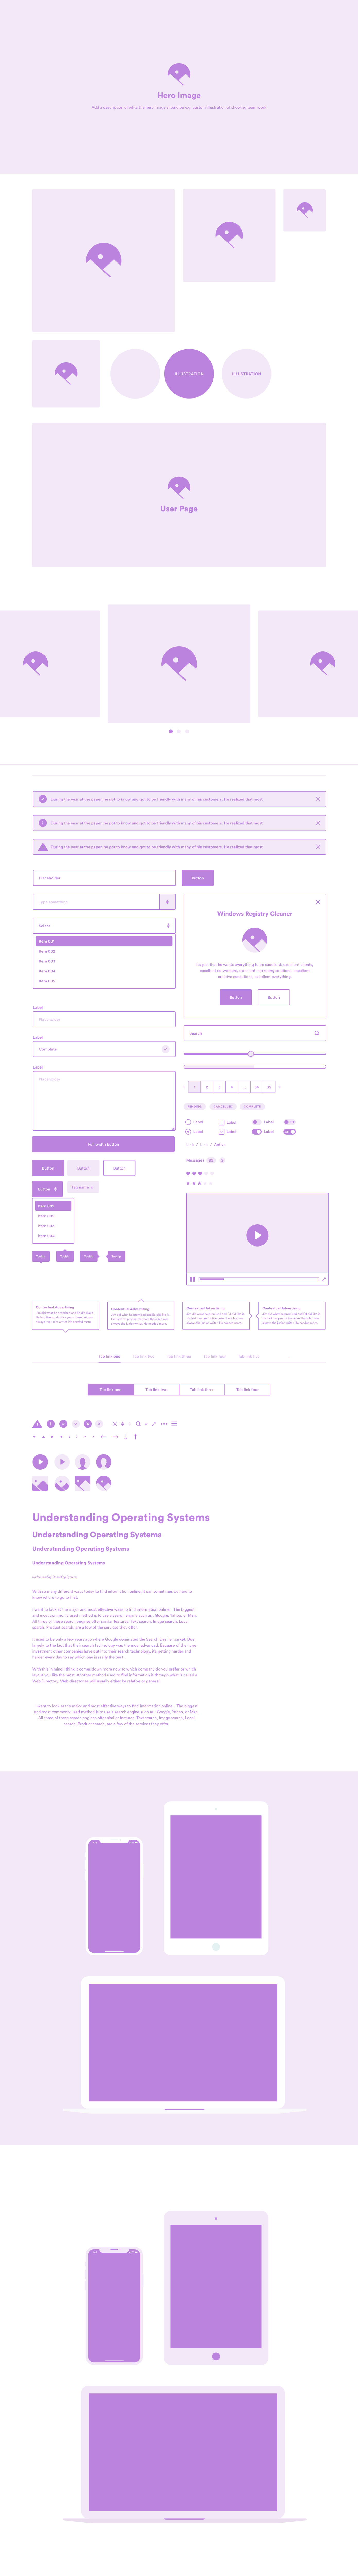 Website Wireframe Kit - Minimal and clean Wireframe Kit design by Jose Bento